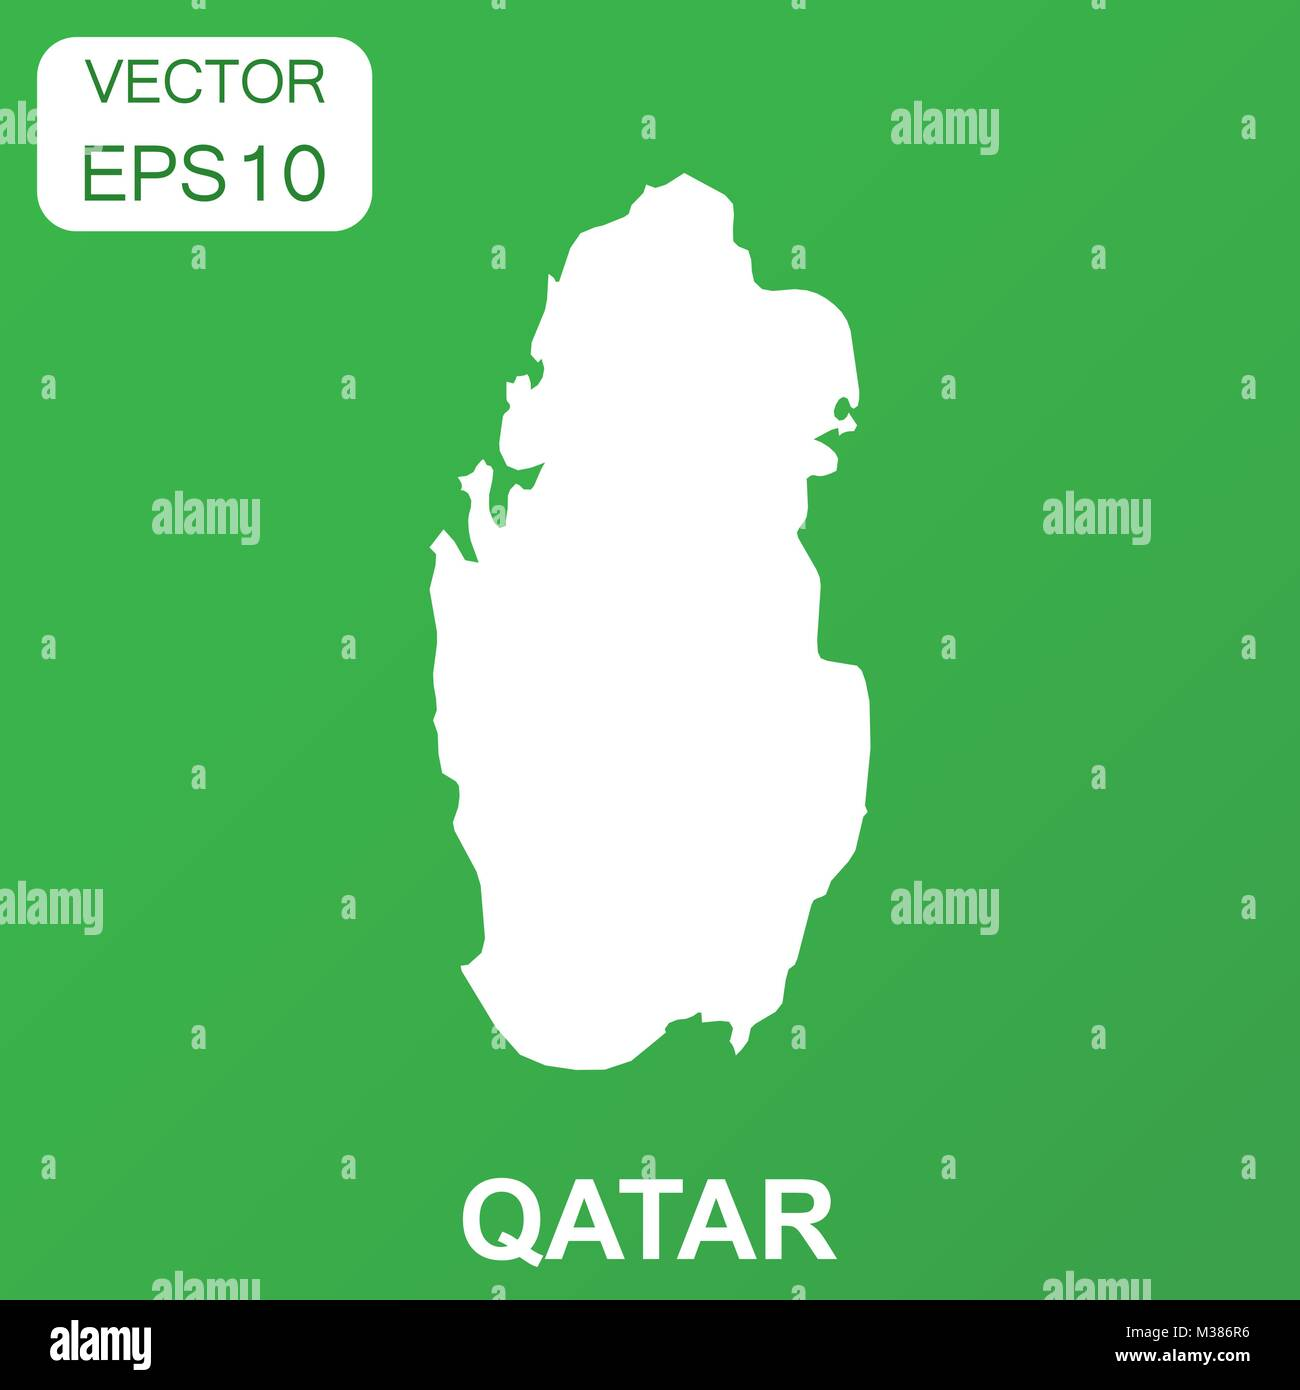 Qatar Vector Vectors Stock Photos & Qatar Vector Vectors